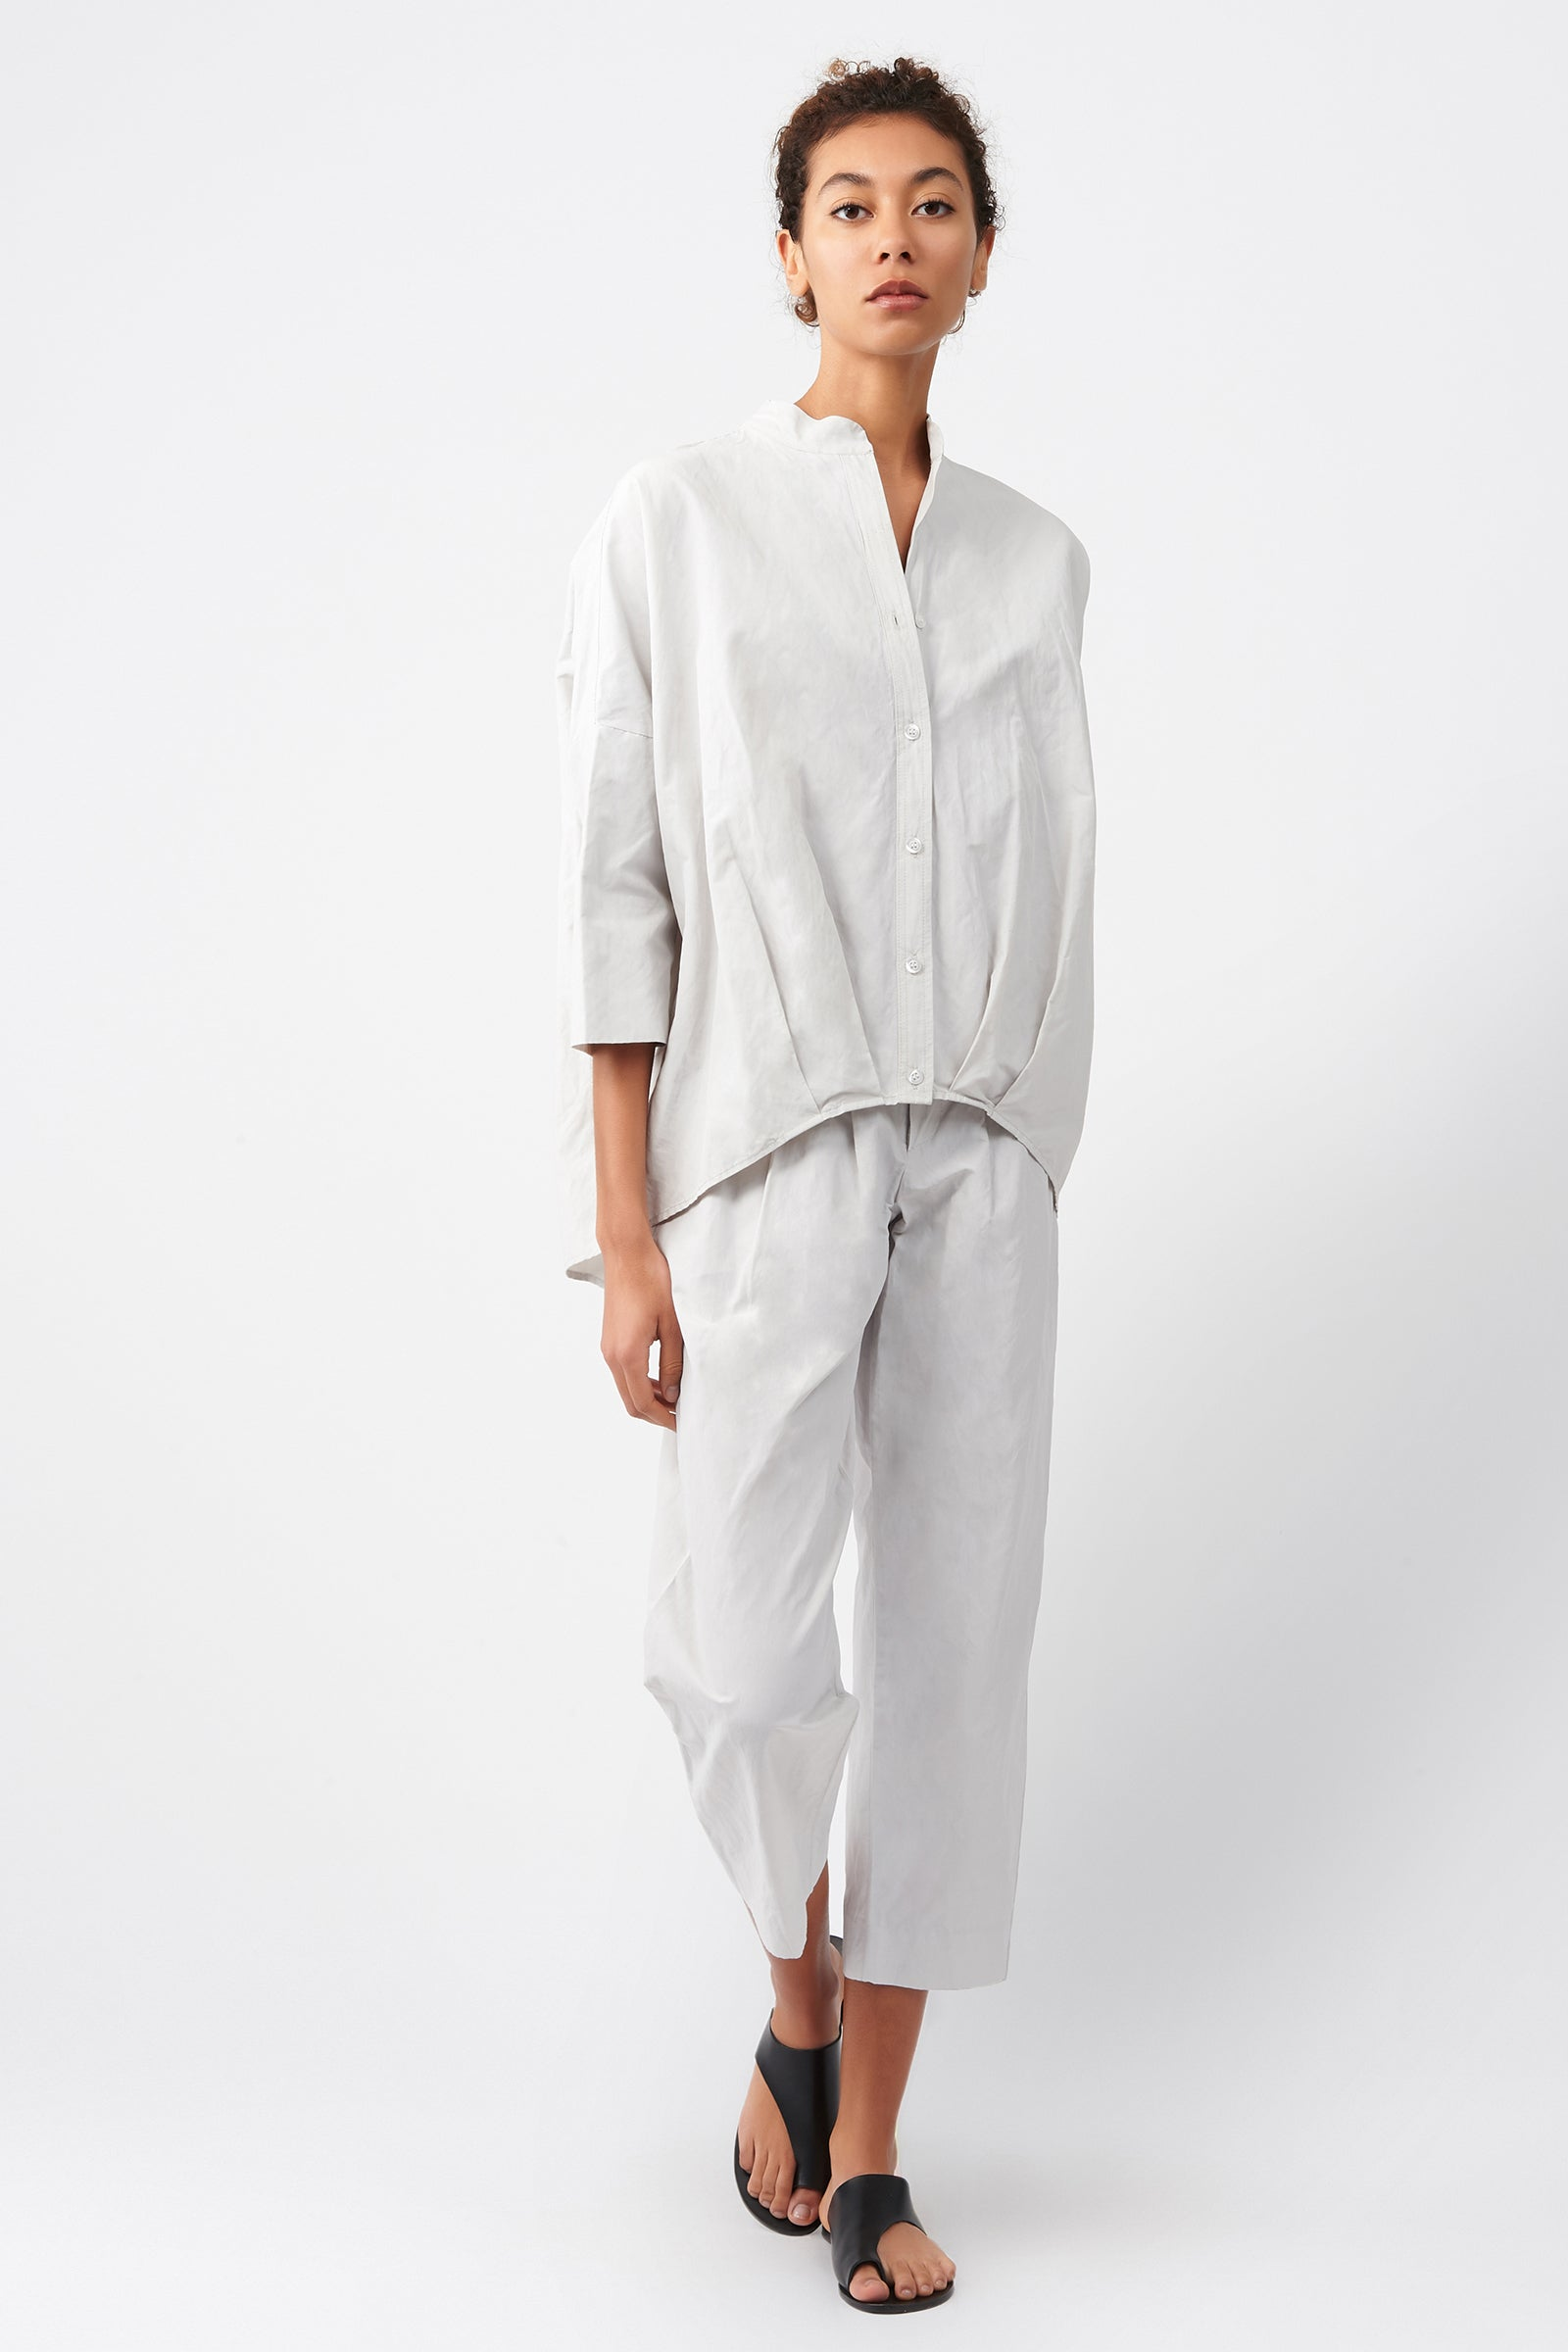 Kal Rieman Pleat Hem Kimono in Stone on Model Full Front View